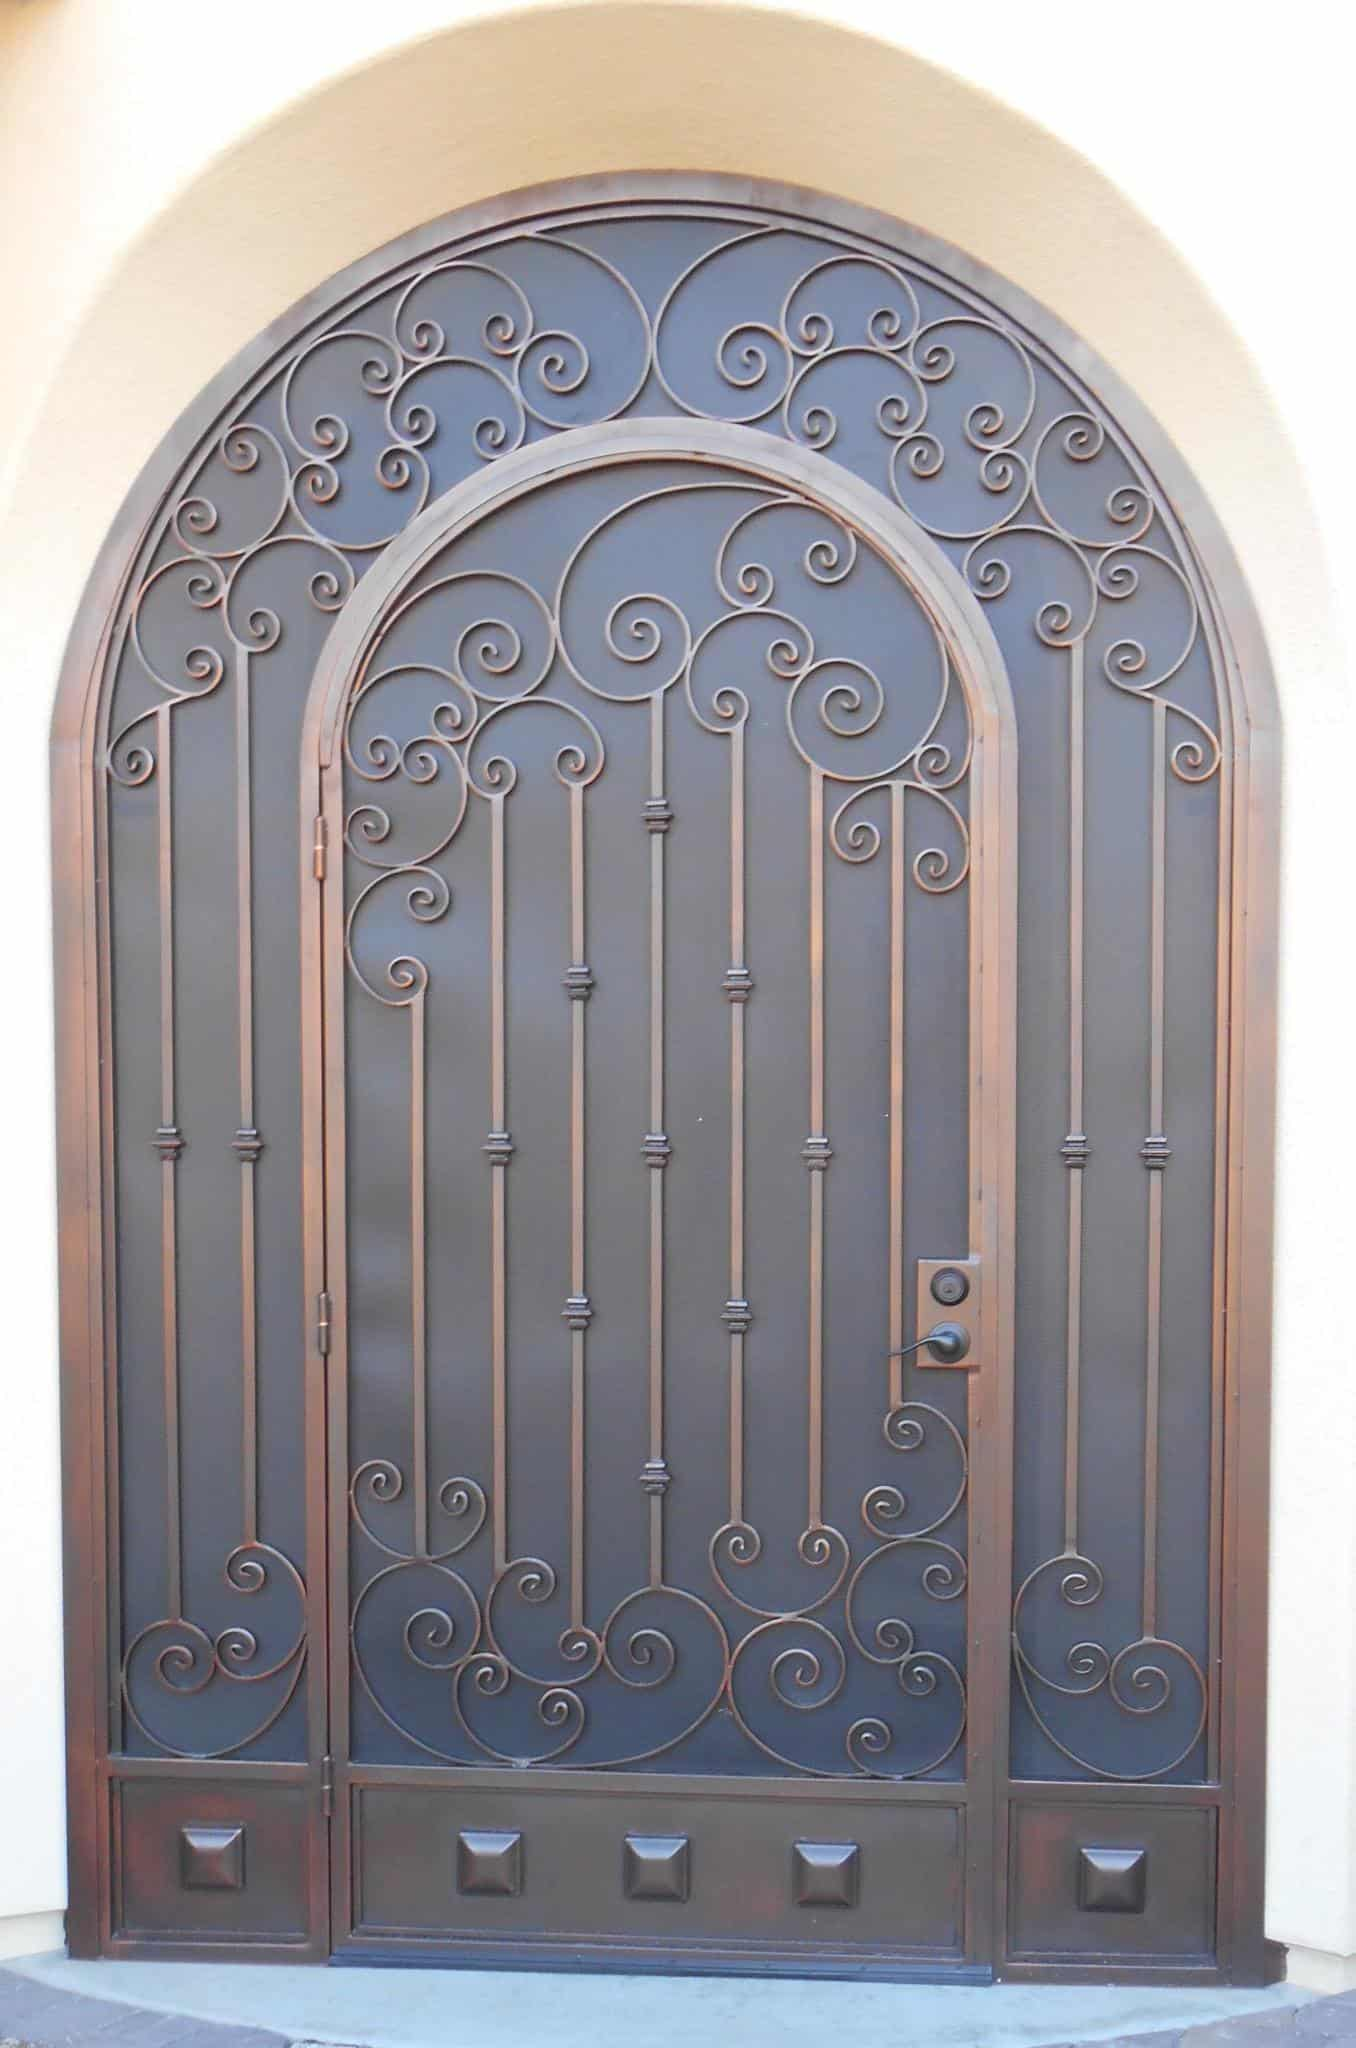 Ornamental security door with knuckles and scrolls E910 - The top is arched - Made in Tucson